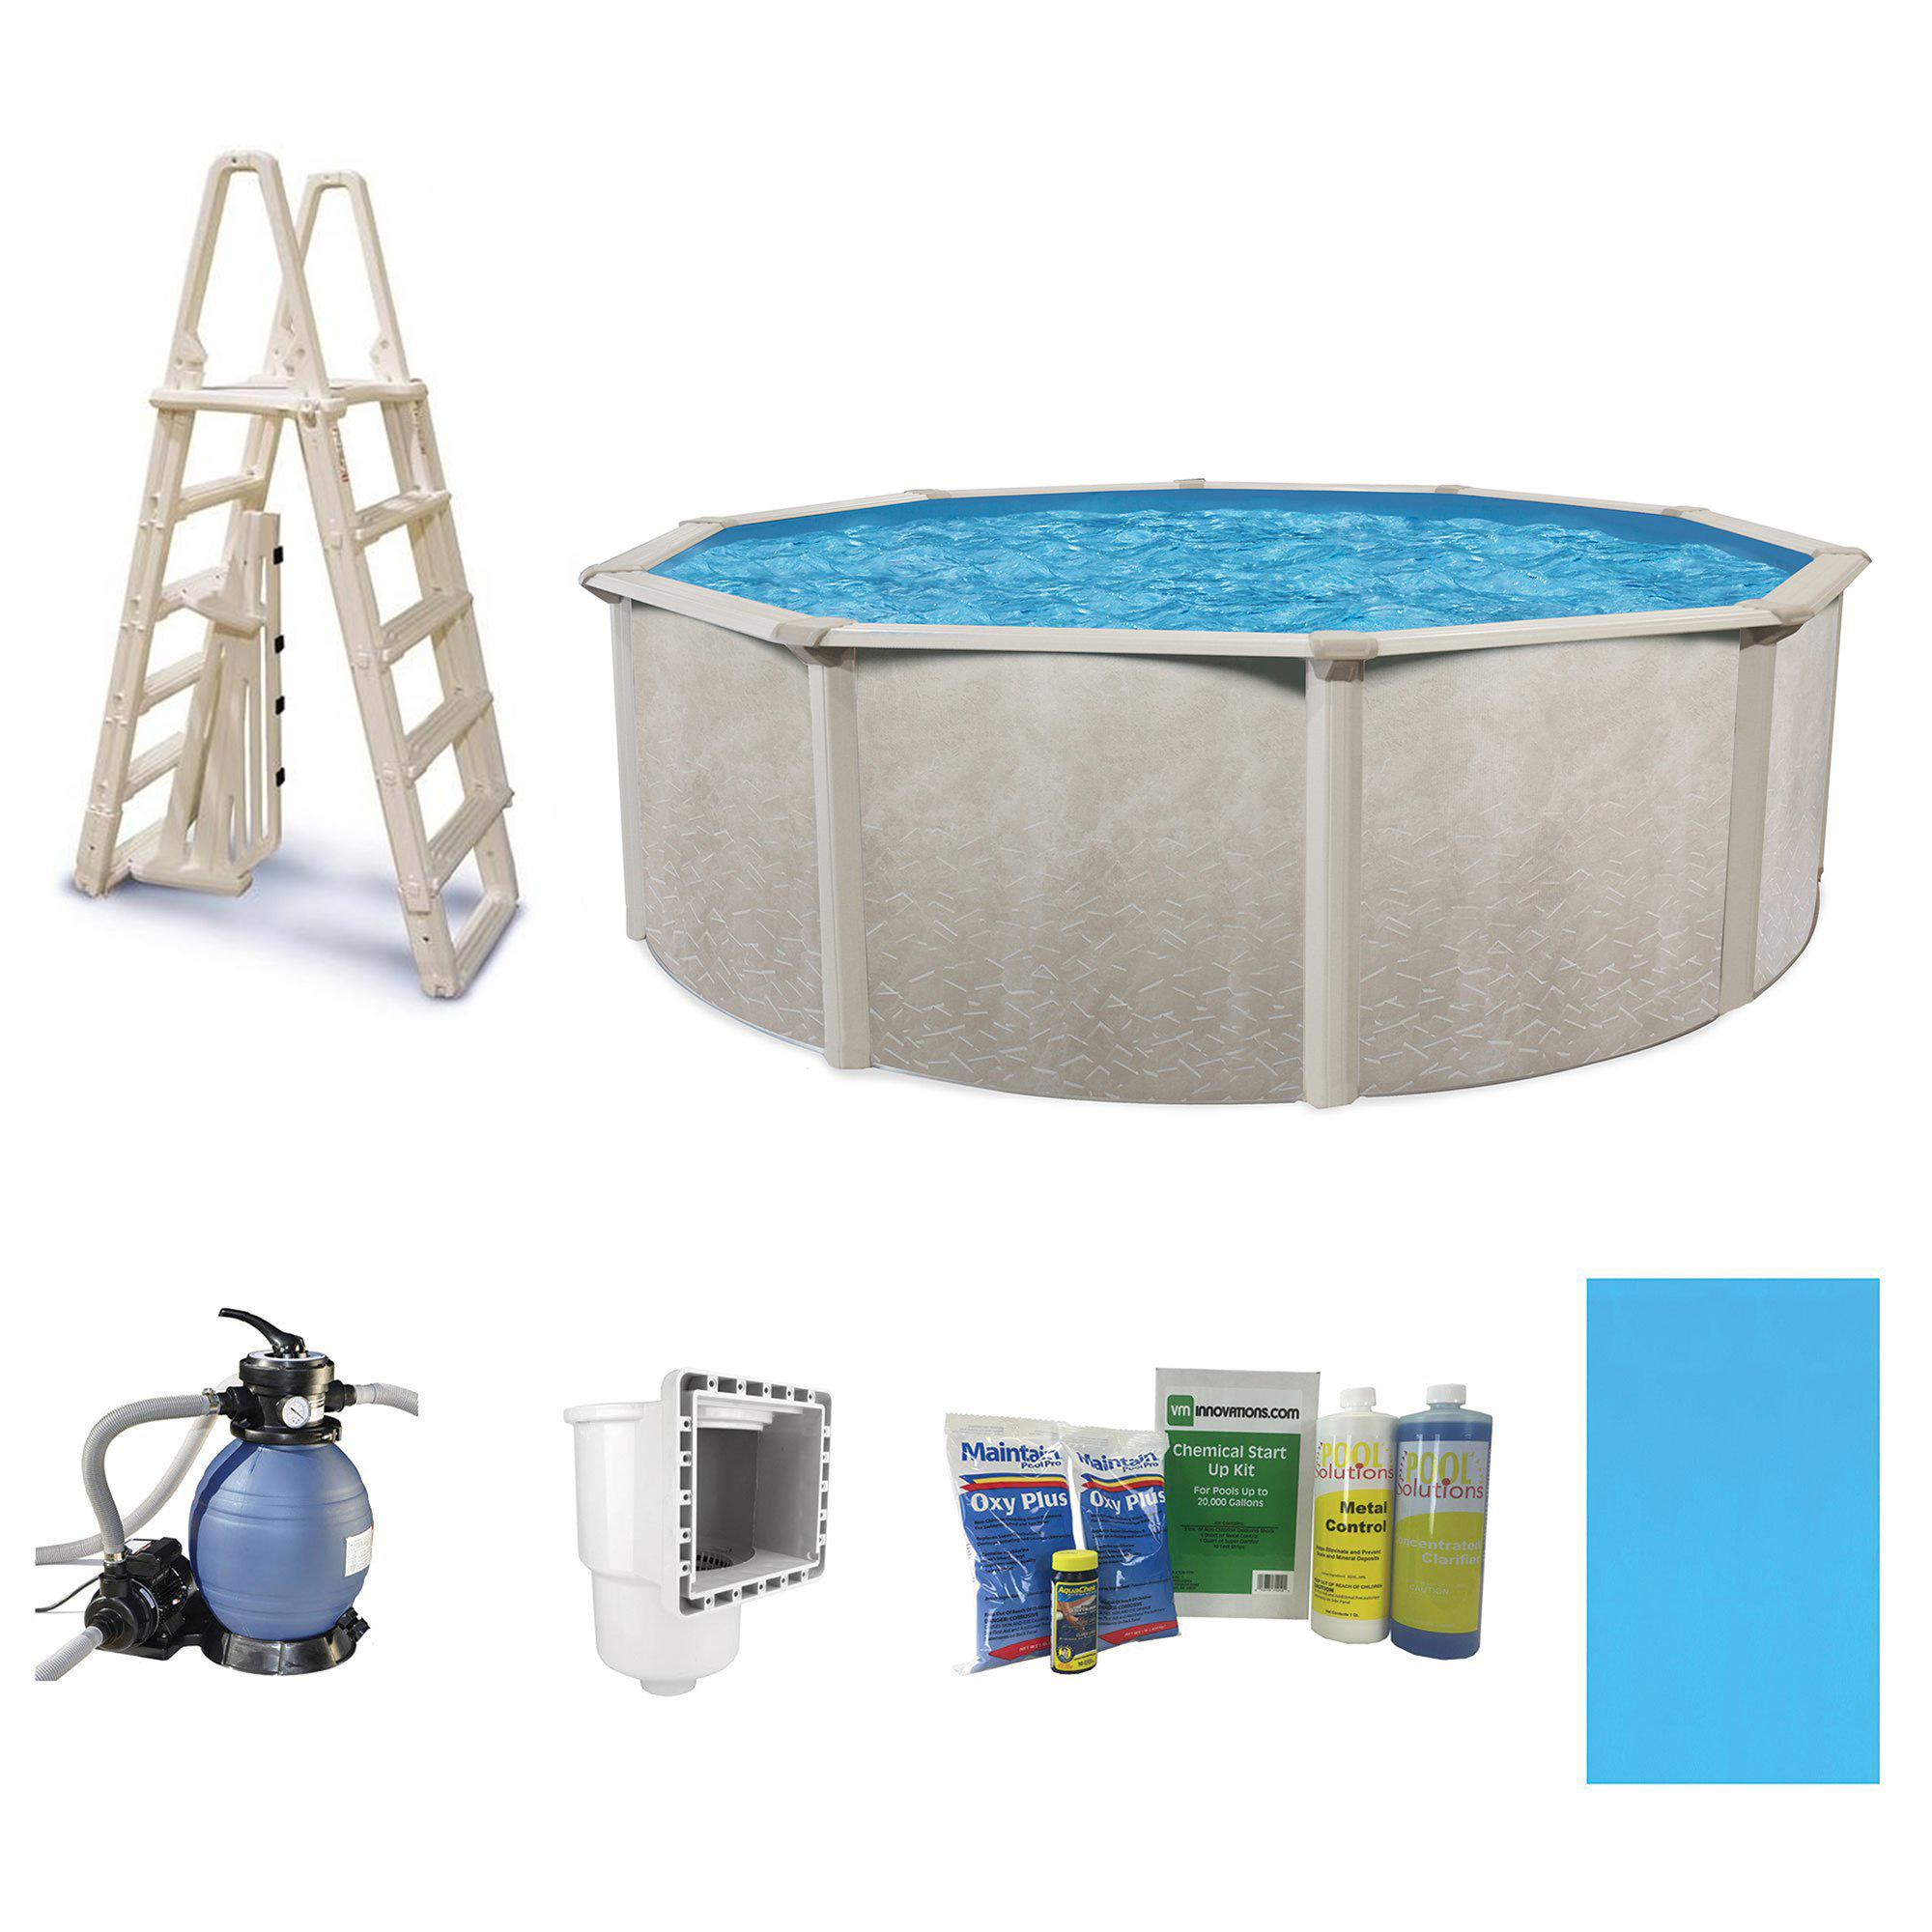 Cornelius pools phoenix 15 39 x 52 frame above ground pool kit with pump ladder ebay for Above ground swimming pool kits